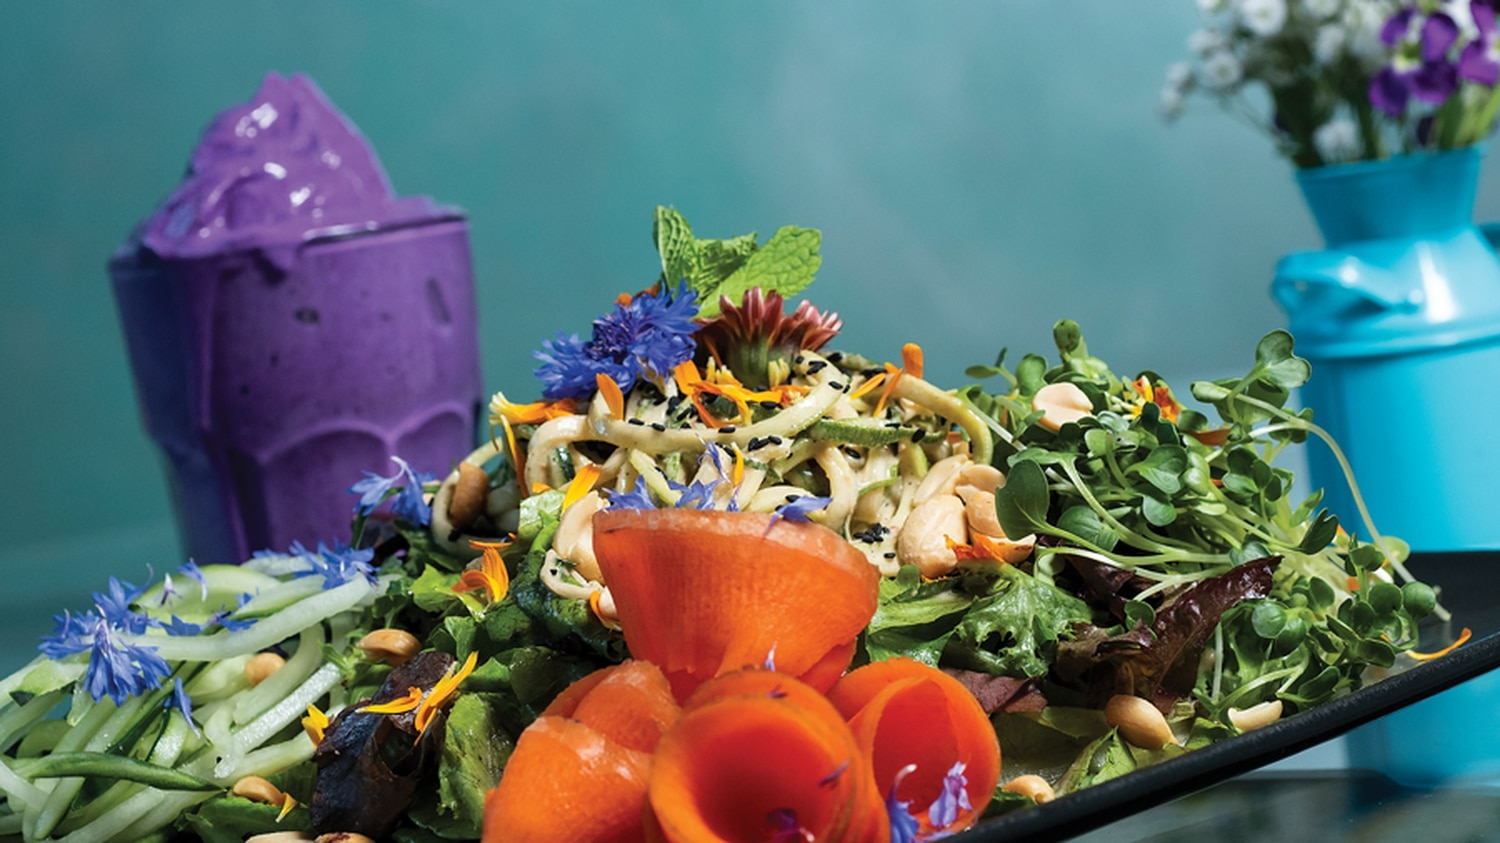 Edible Alchemy: Zen salad with Green Tractor Farms greens and flowers, zucchini noodles, peanuts and carrots